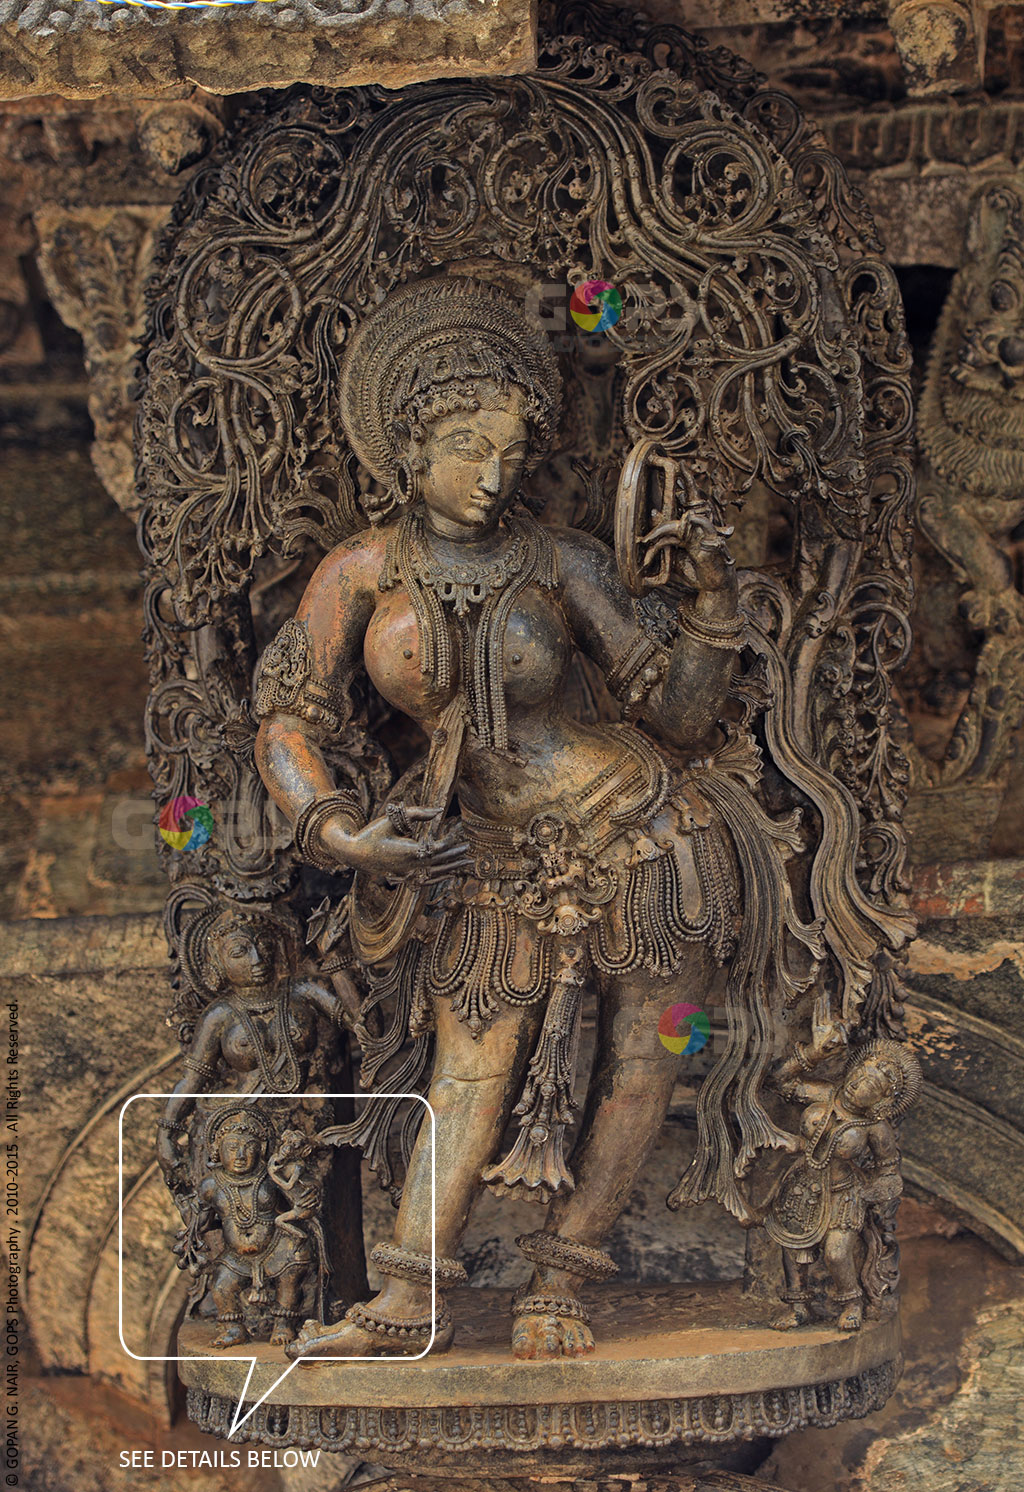 DARPANA SUNDARI (BEAUTY WITH A MIRROR). LET'S HAVE A CLOSER LOOK AT THE DETAILS OF THIS STATUE BELOW